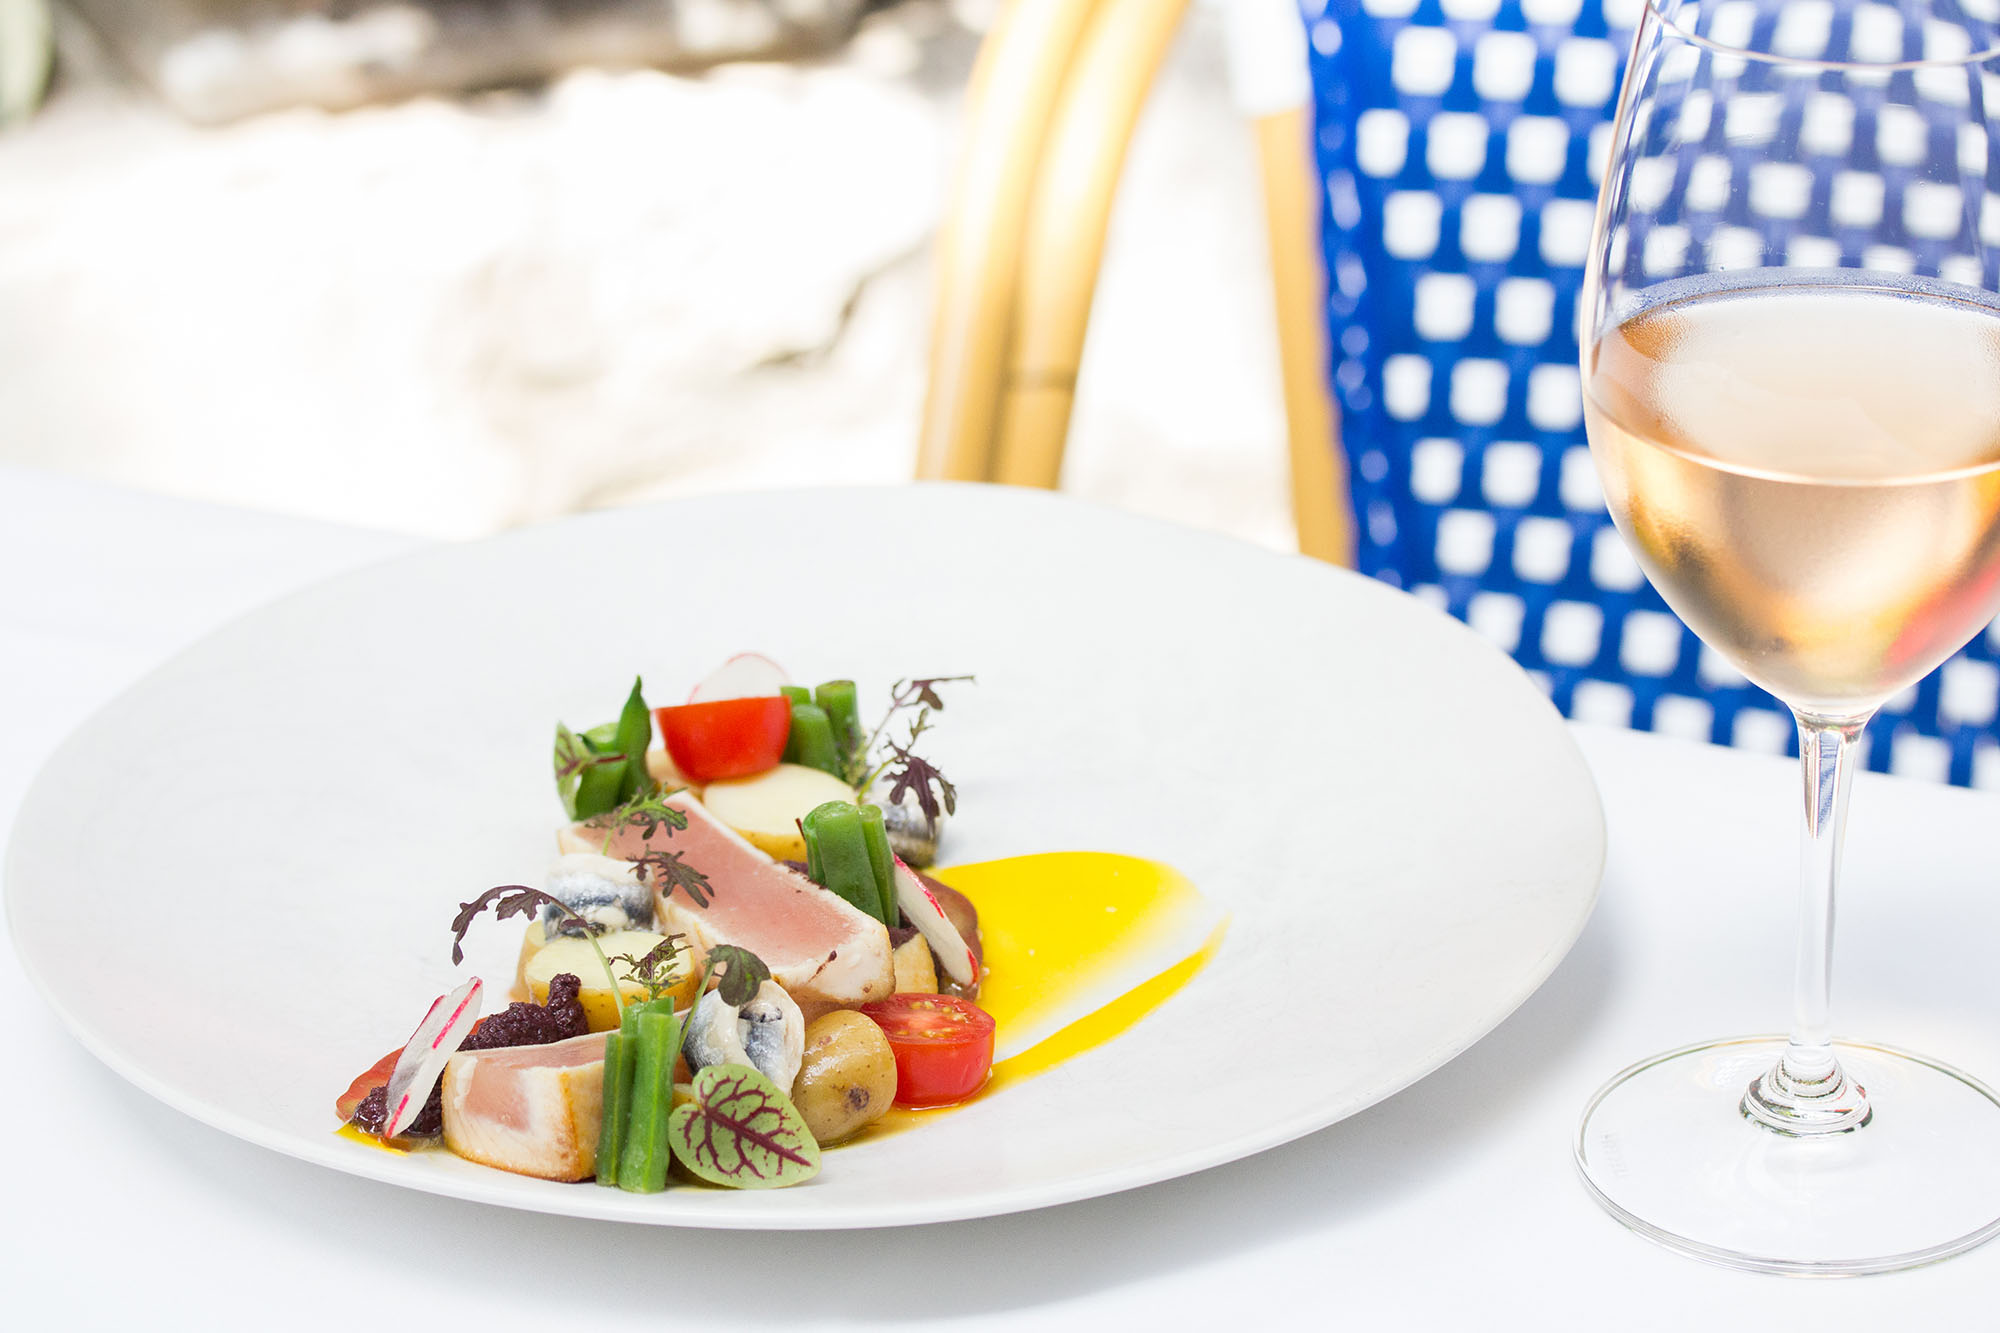 Summerlicious dishes on white table at Auberge du Pommier restaurant in North York